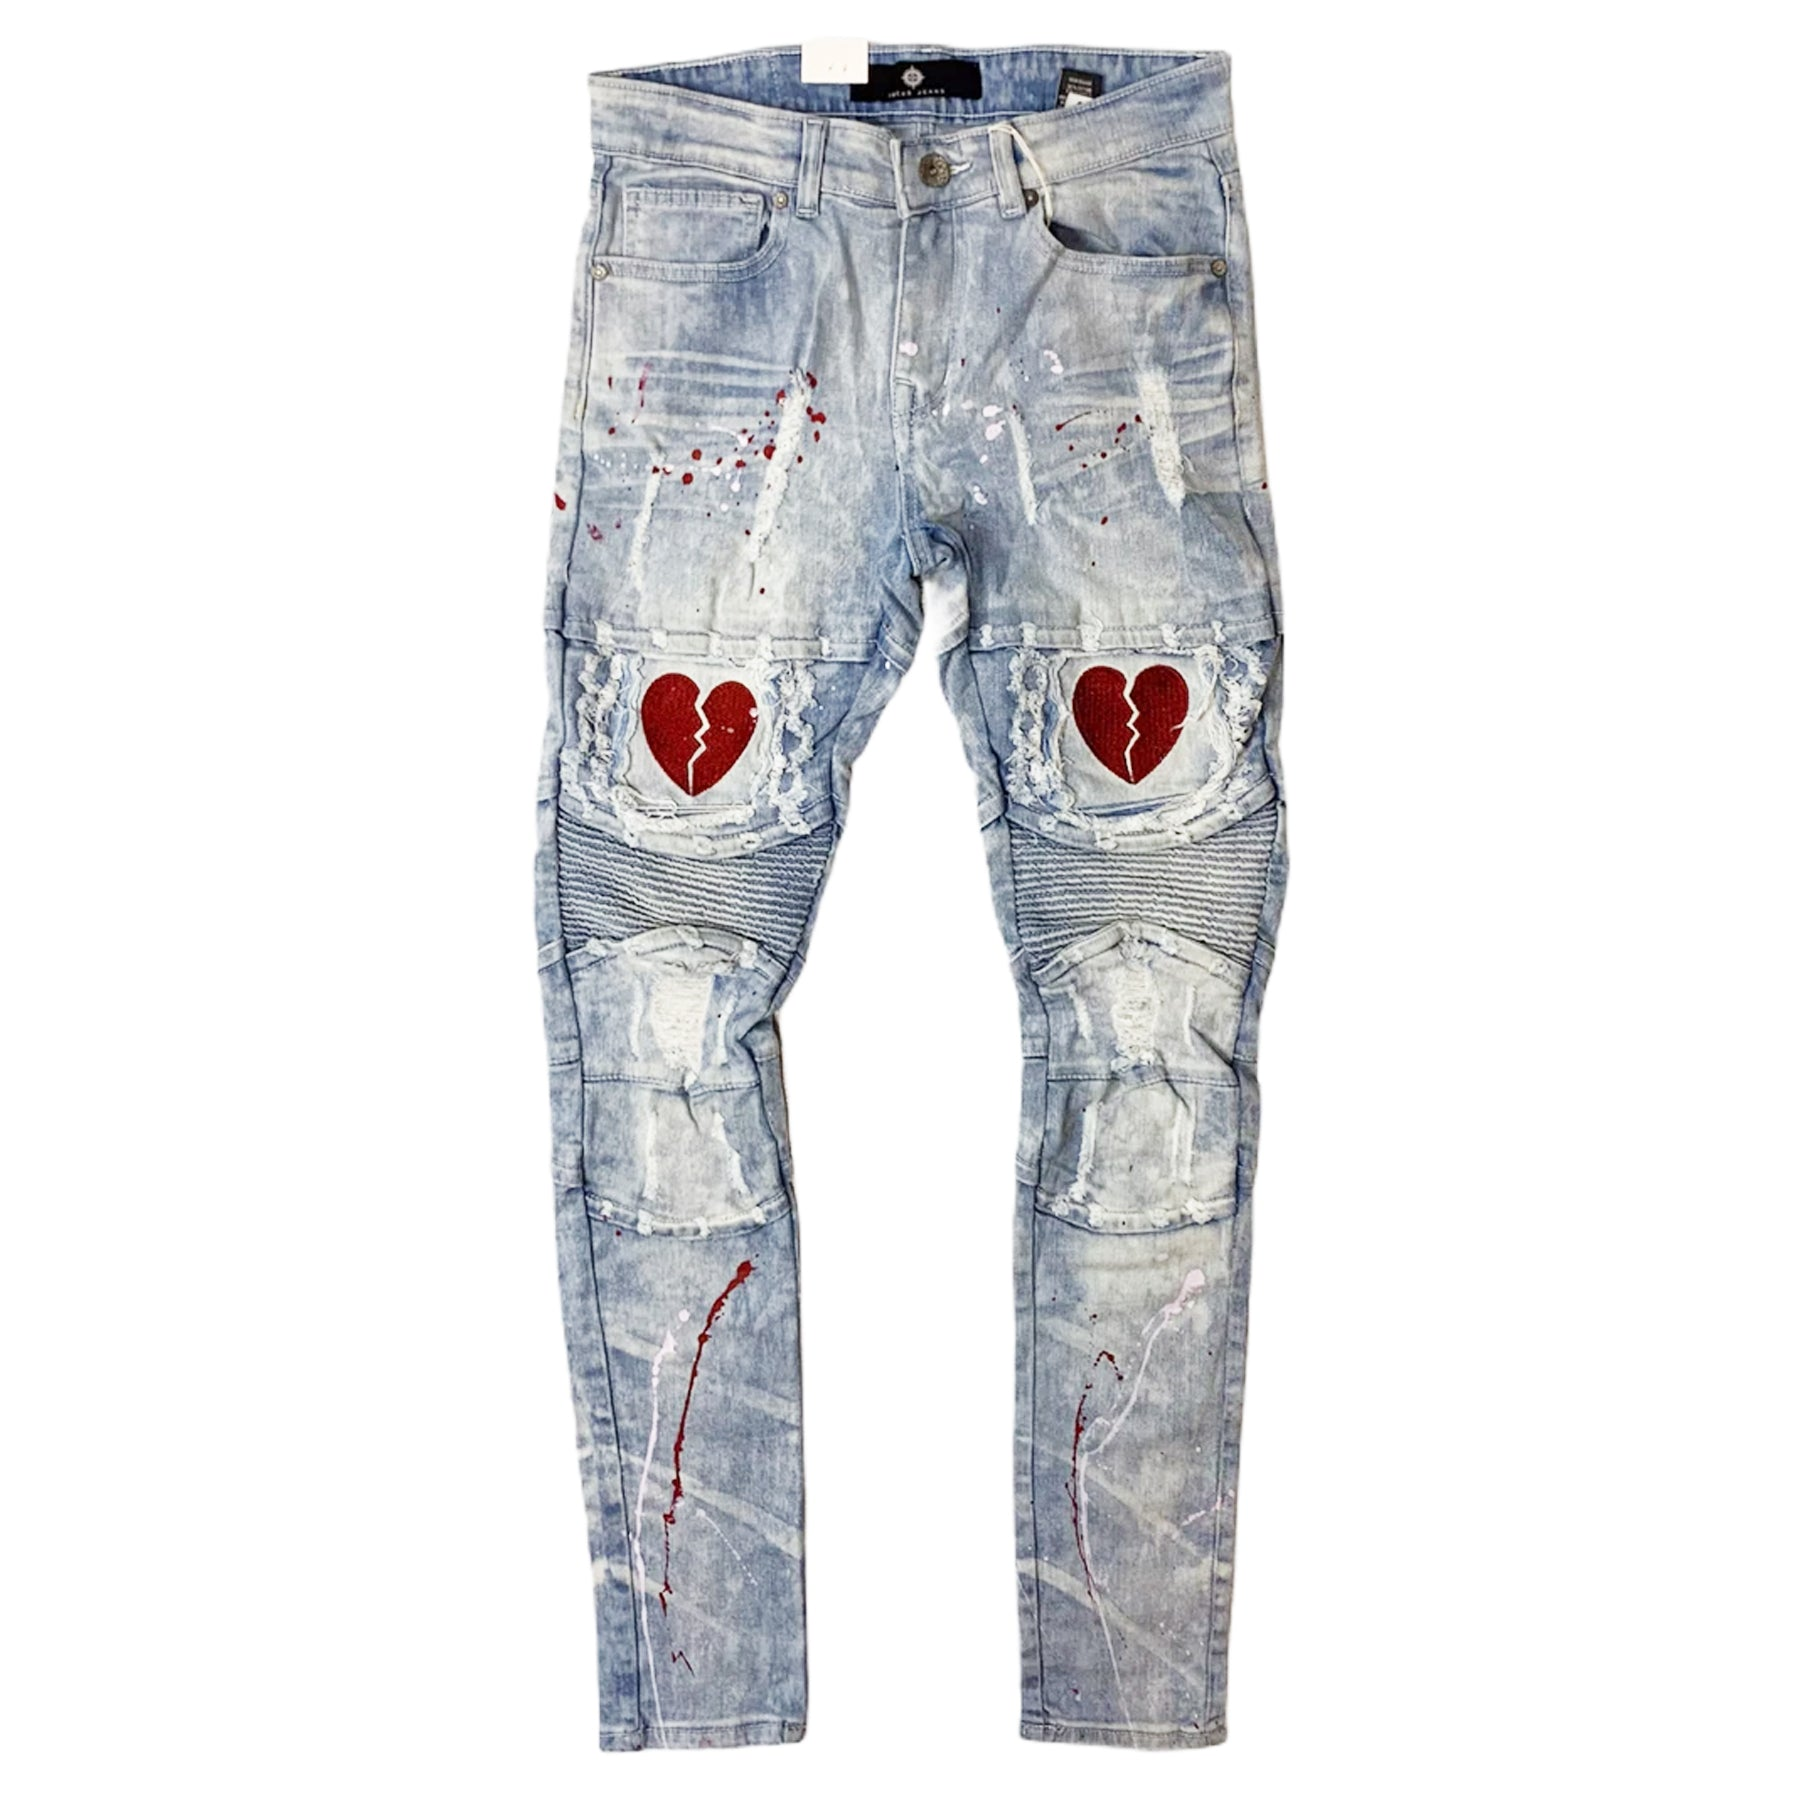 Heartbreak Distressed Biker Denim (Ice Lt. Blue) / C8